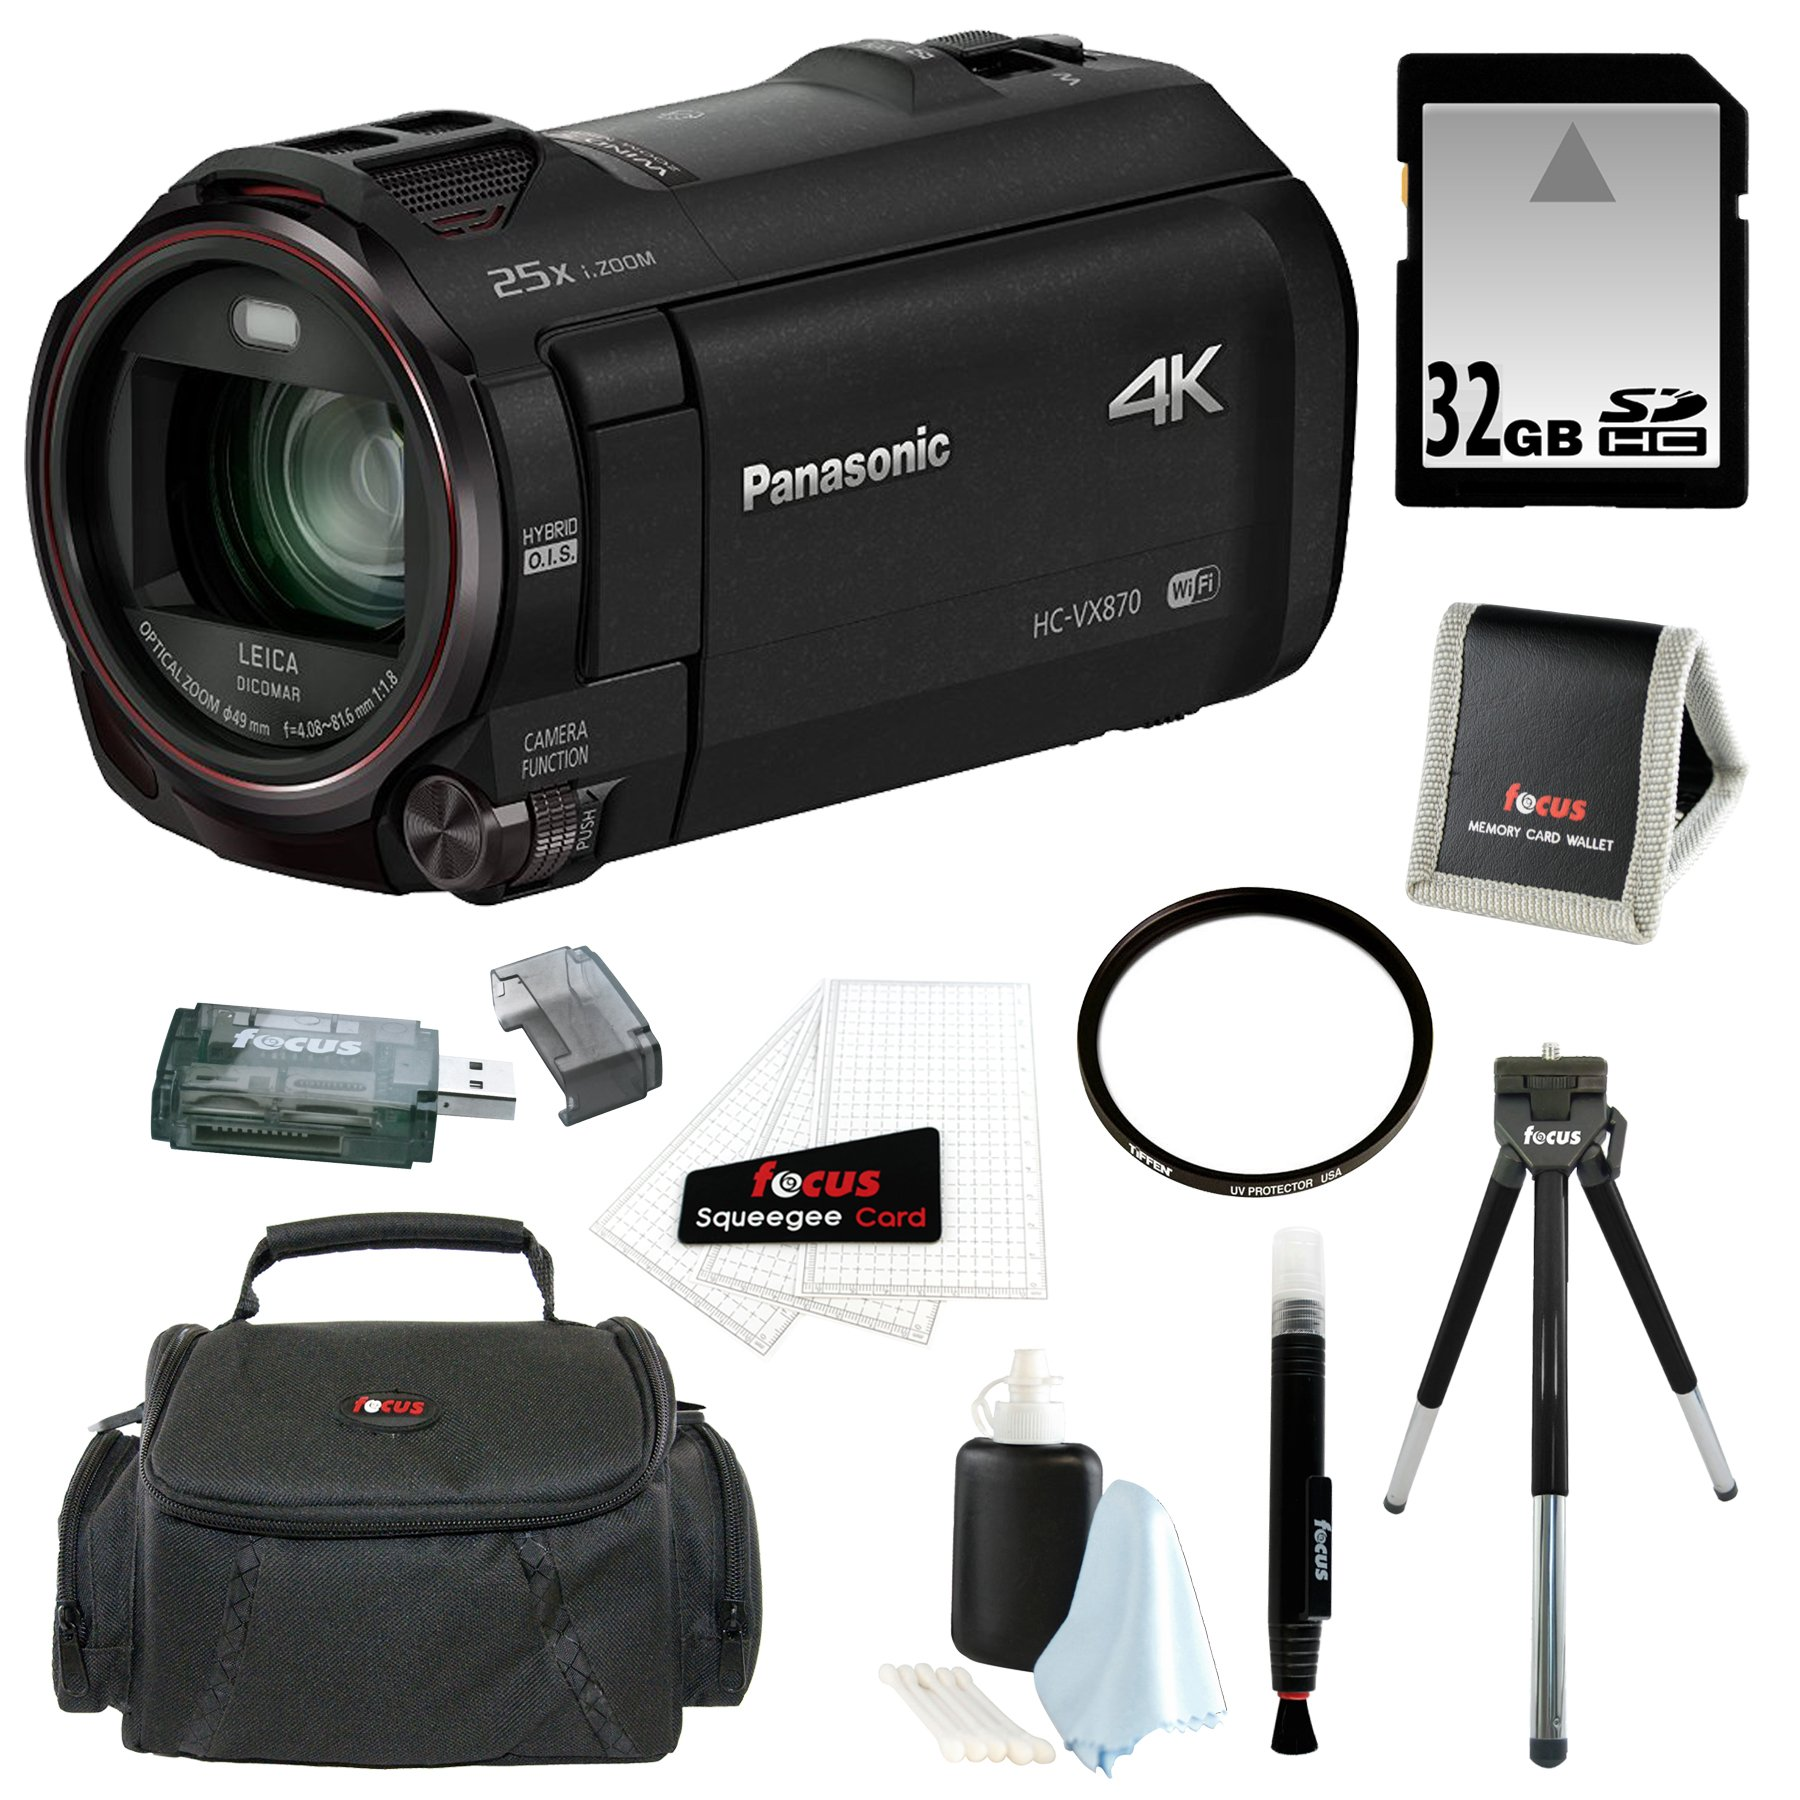 Panasonic HCVX870K HC-VX870K 4K Ultra HD Camcorder with Wireless Smartphone Twin Video Capture with 32GB SD Card, Tiffen 49mm UV Filter, SLR Case and Accessory Bundle by Panasonic